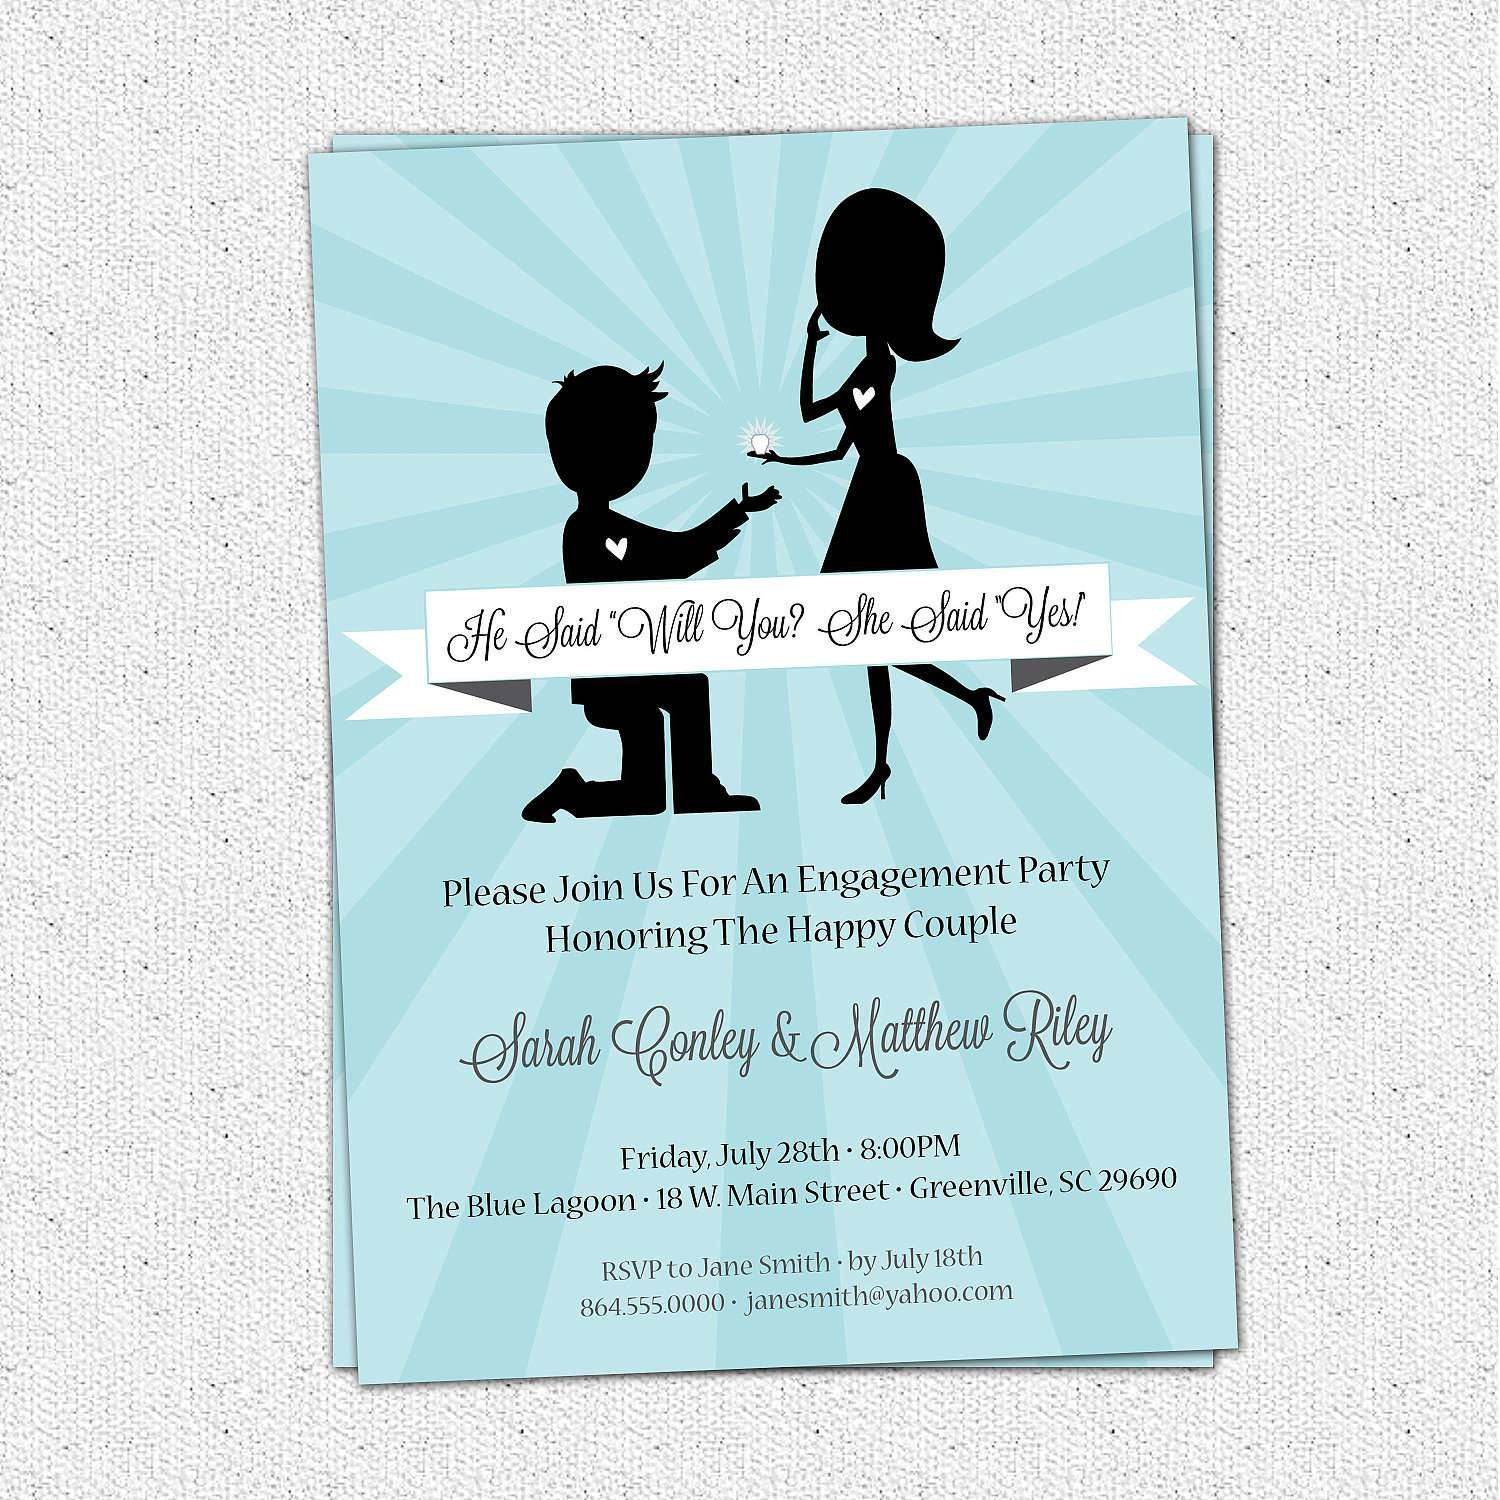 Invitation Template Word Captivating Wedding Invitation Templates  Wedding Invitation Templates Word .